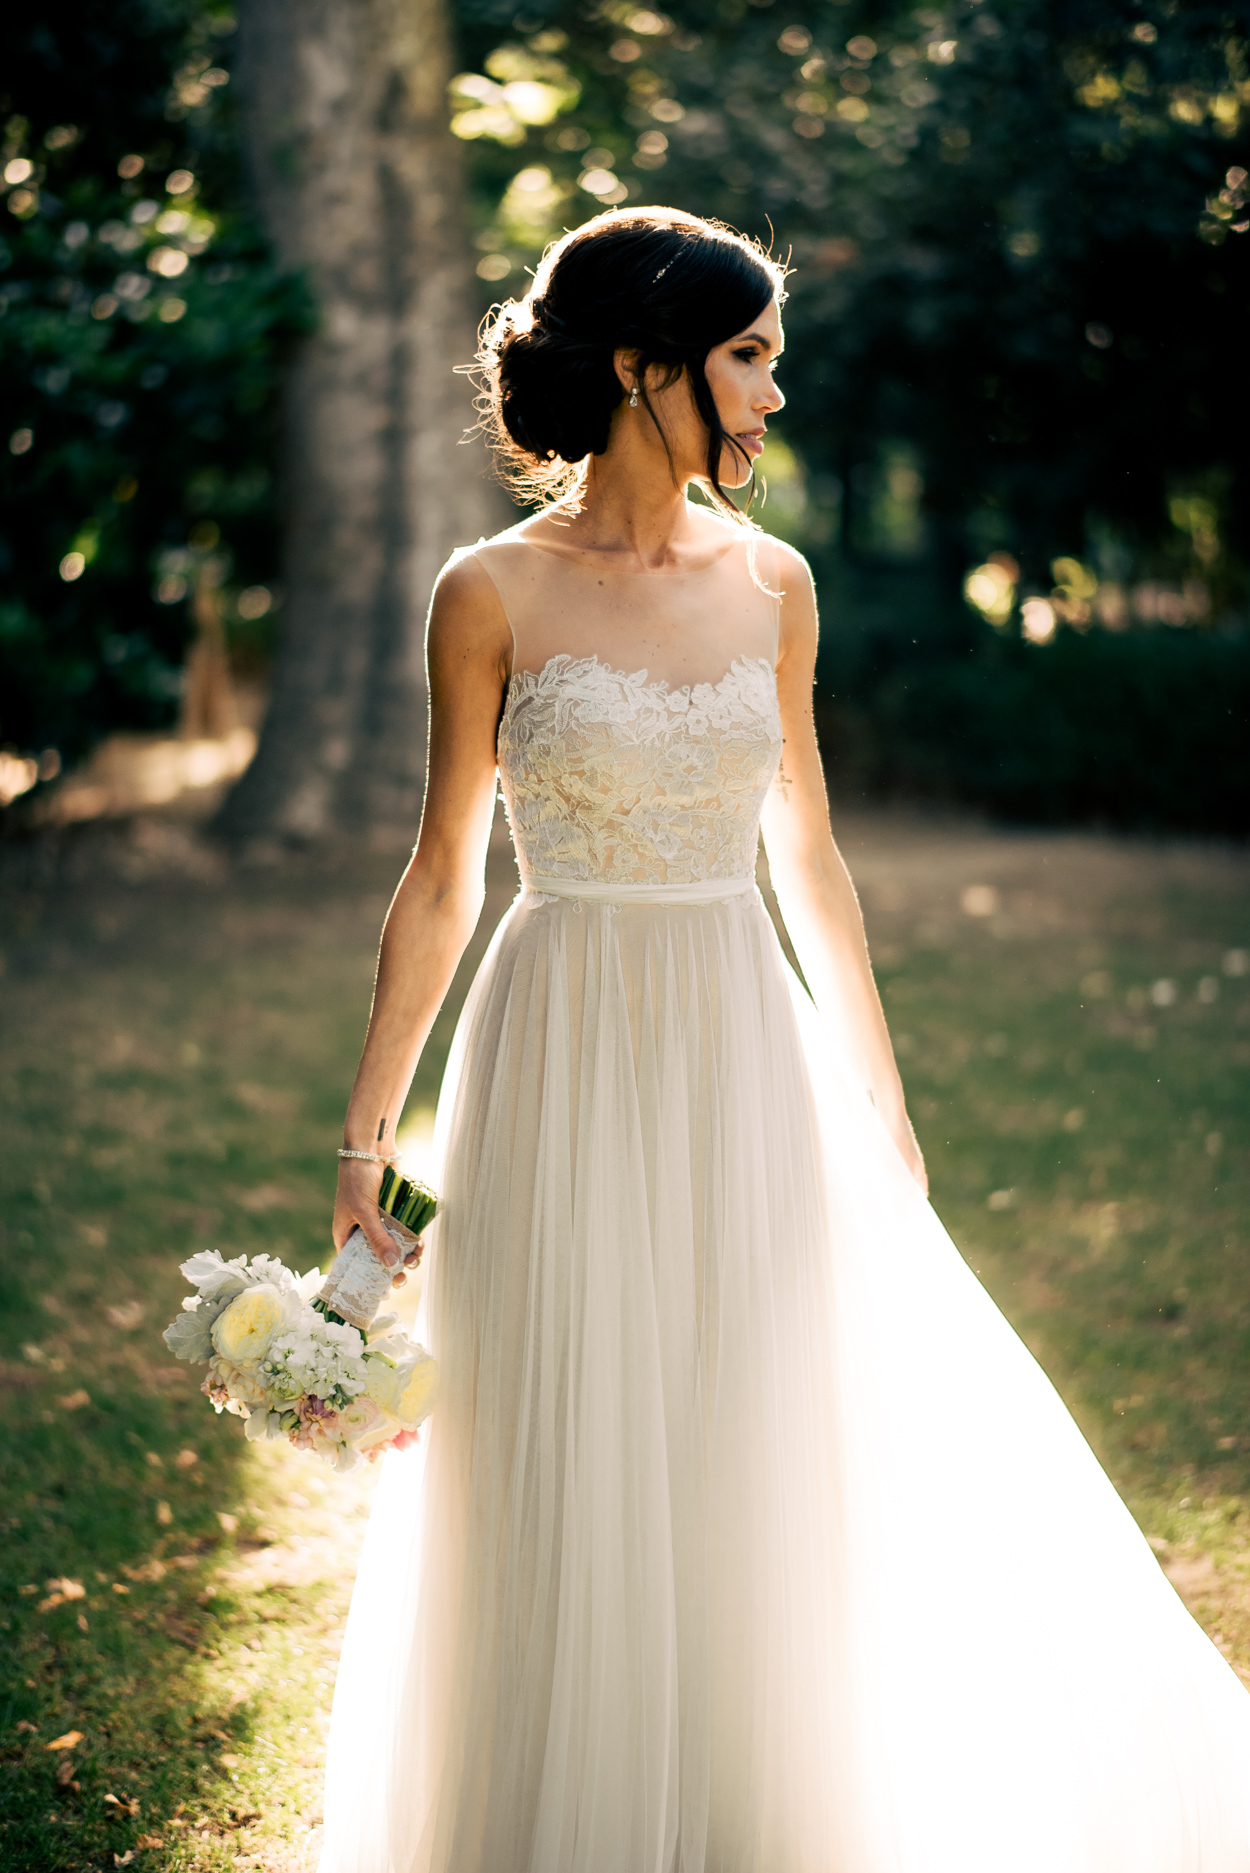 A Line High Quality French Lace Illusion Beach Wedding Dress